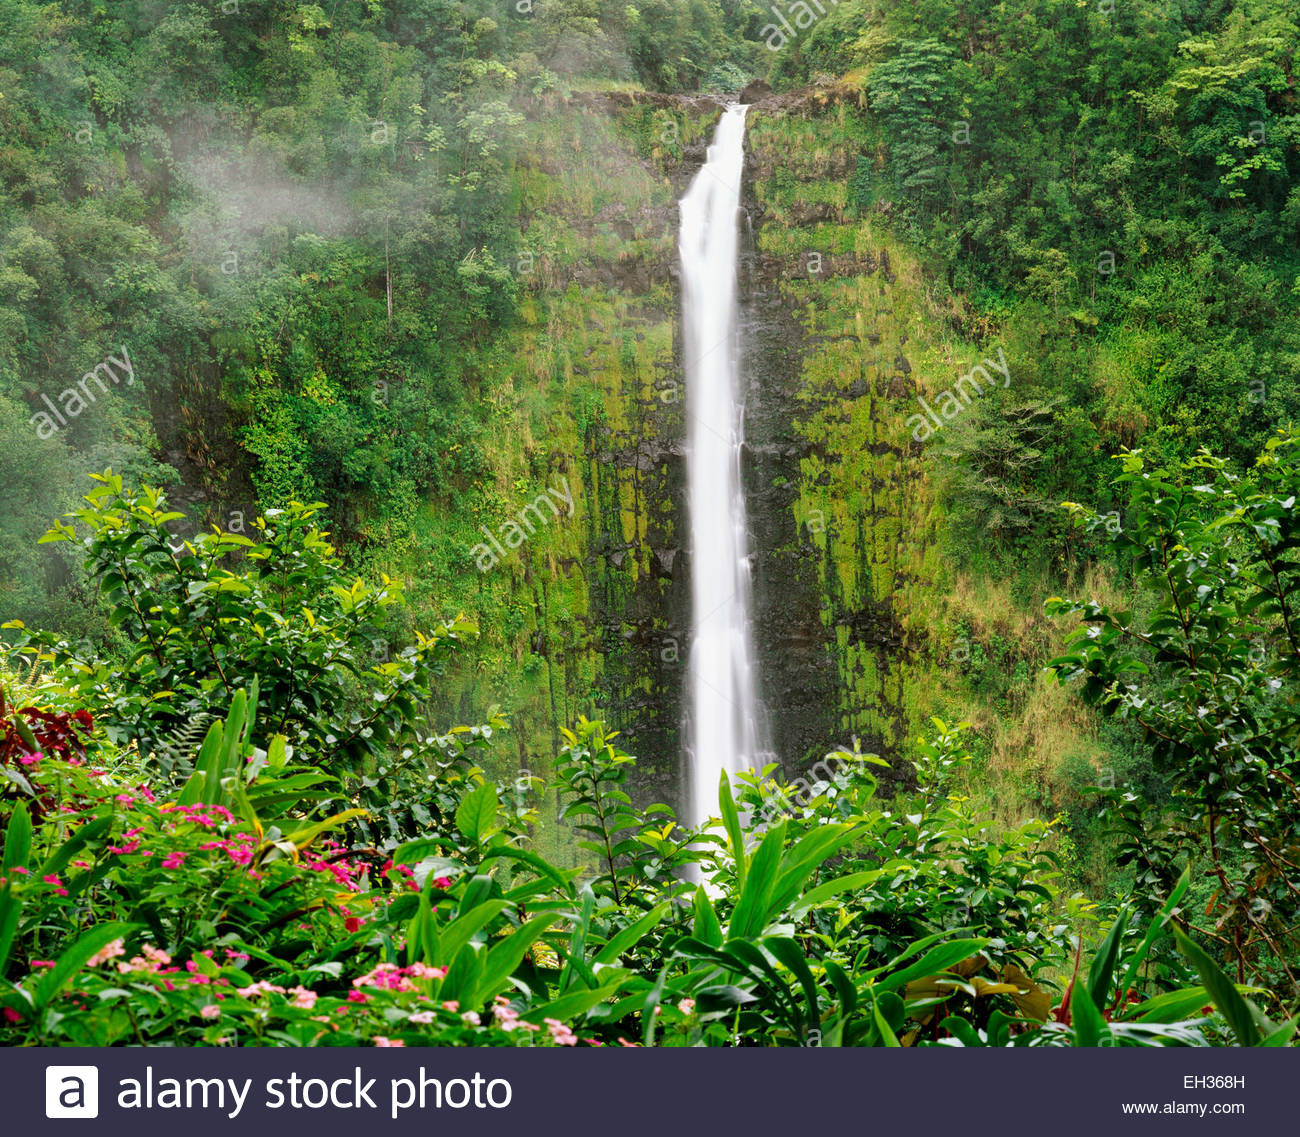 Akaka Falls.  'Akaka' translates to a 'split' or 'crack'.  The Big Island, Hawaii. - Stock Image